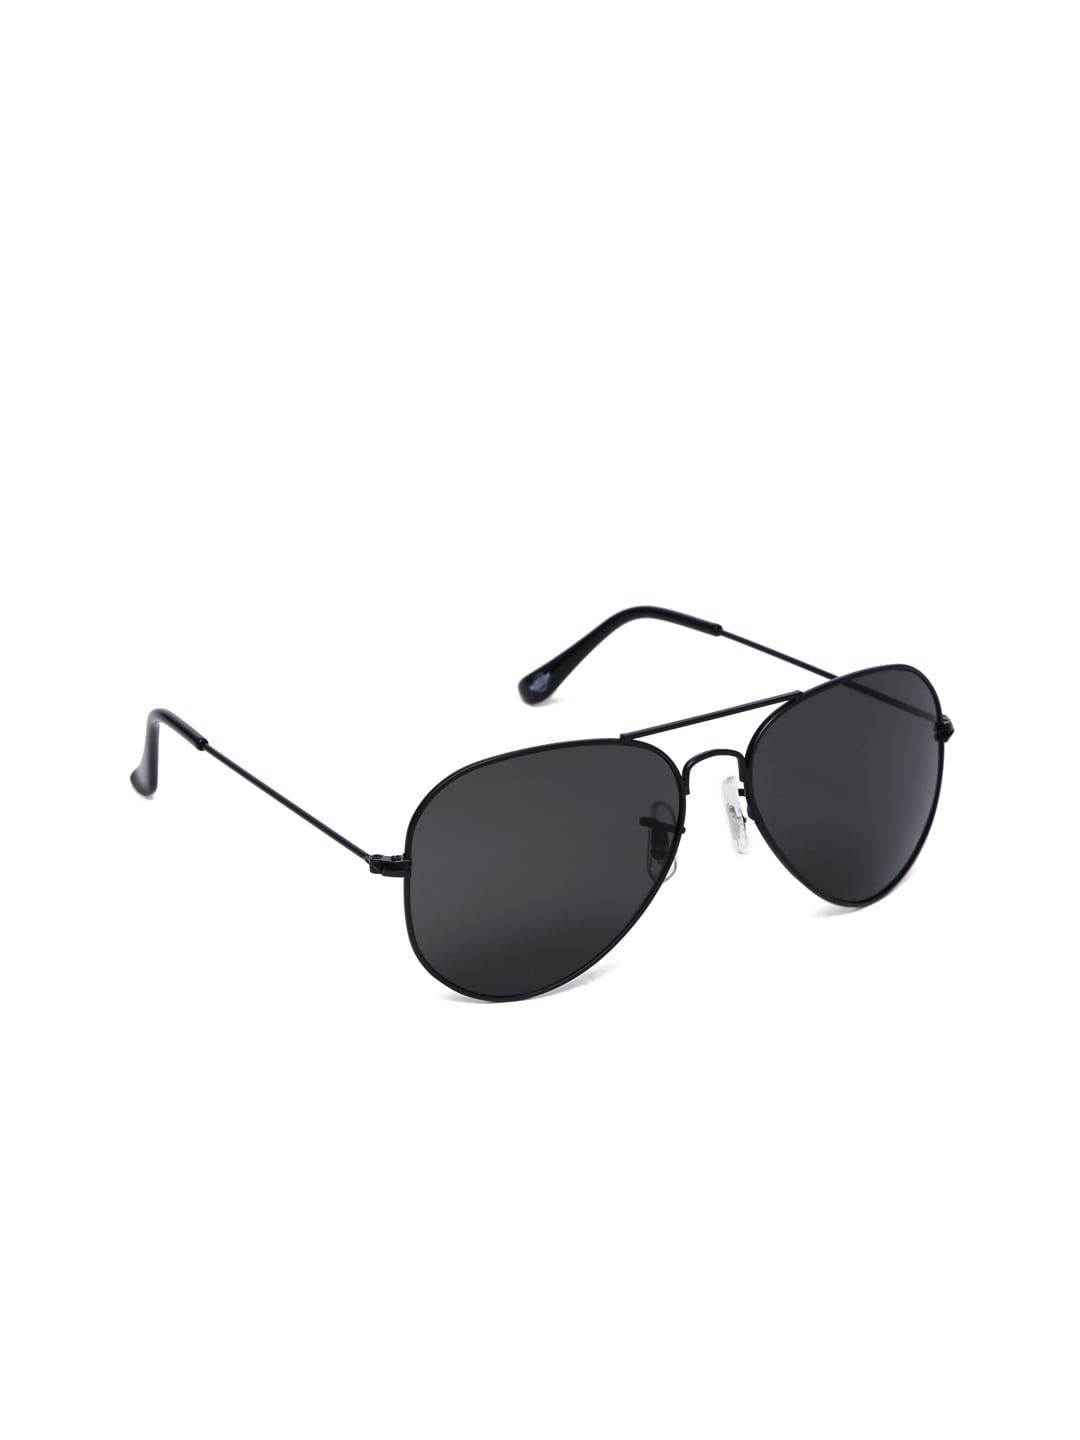 Roadster Unisex Aviator sunglasses